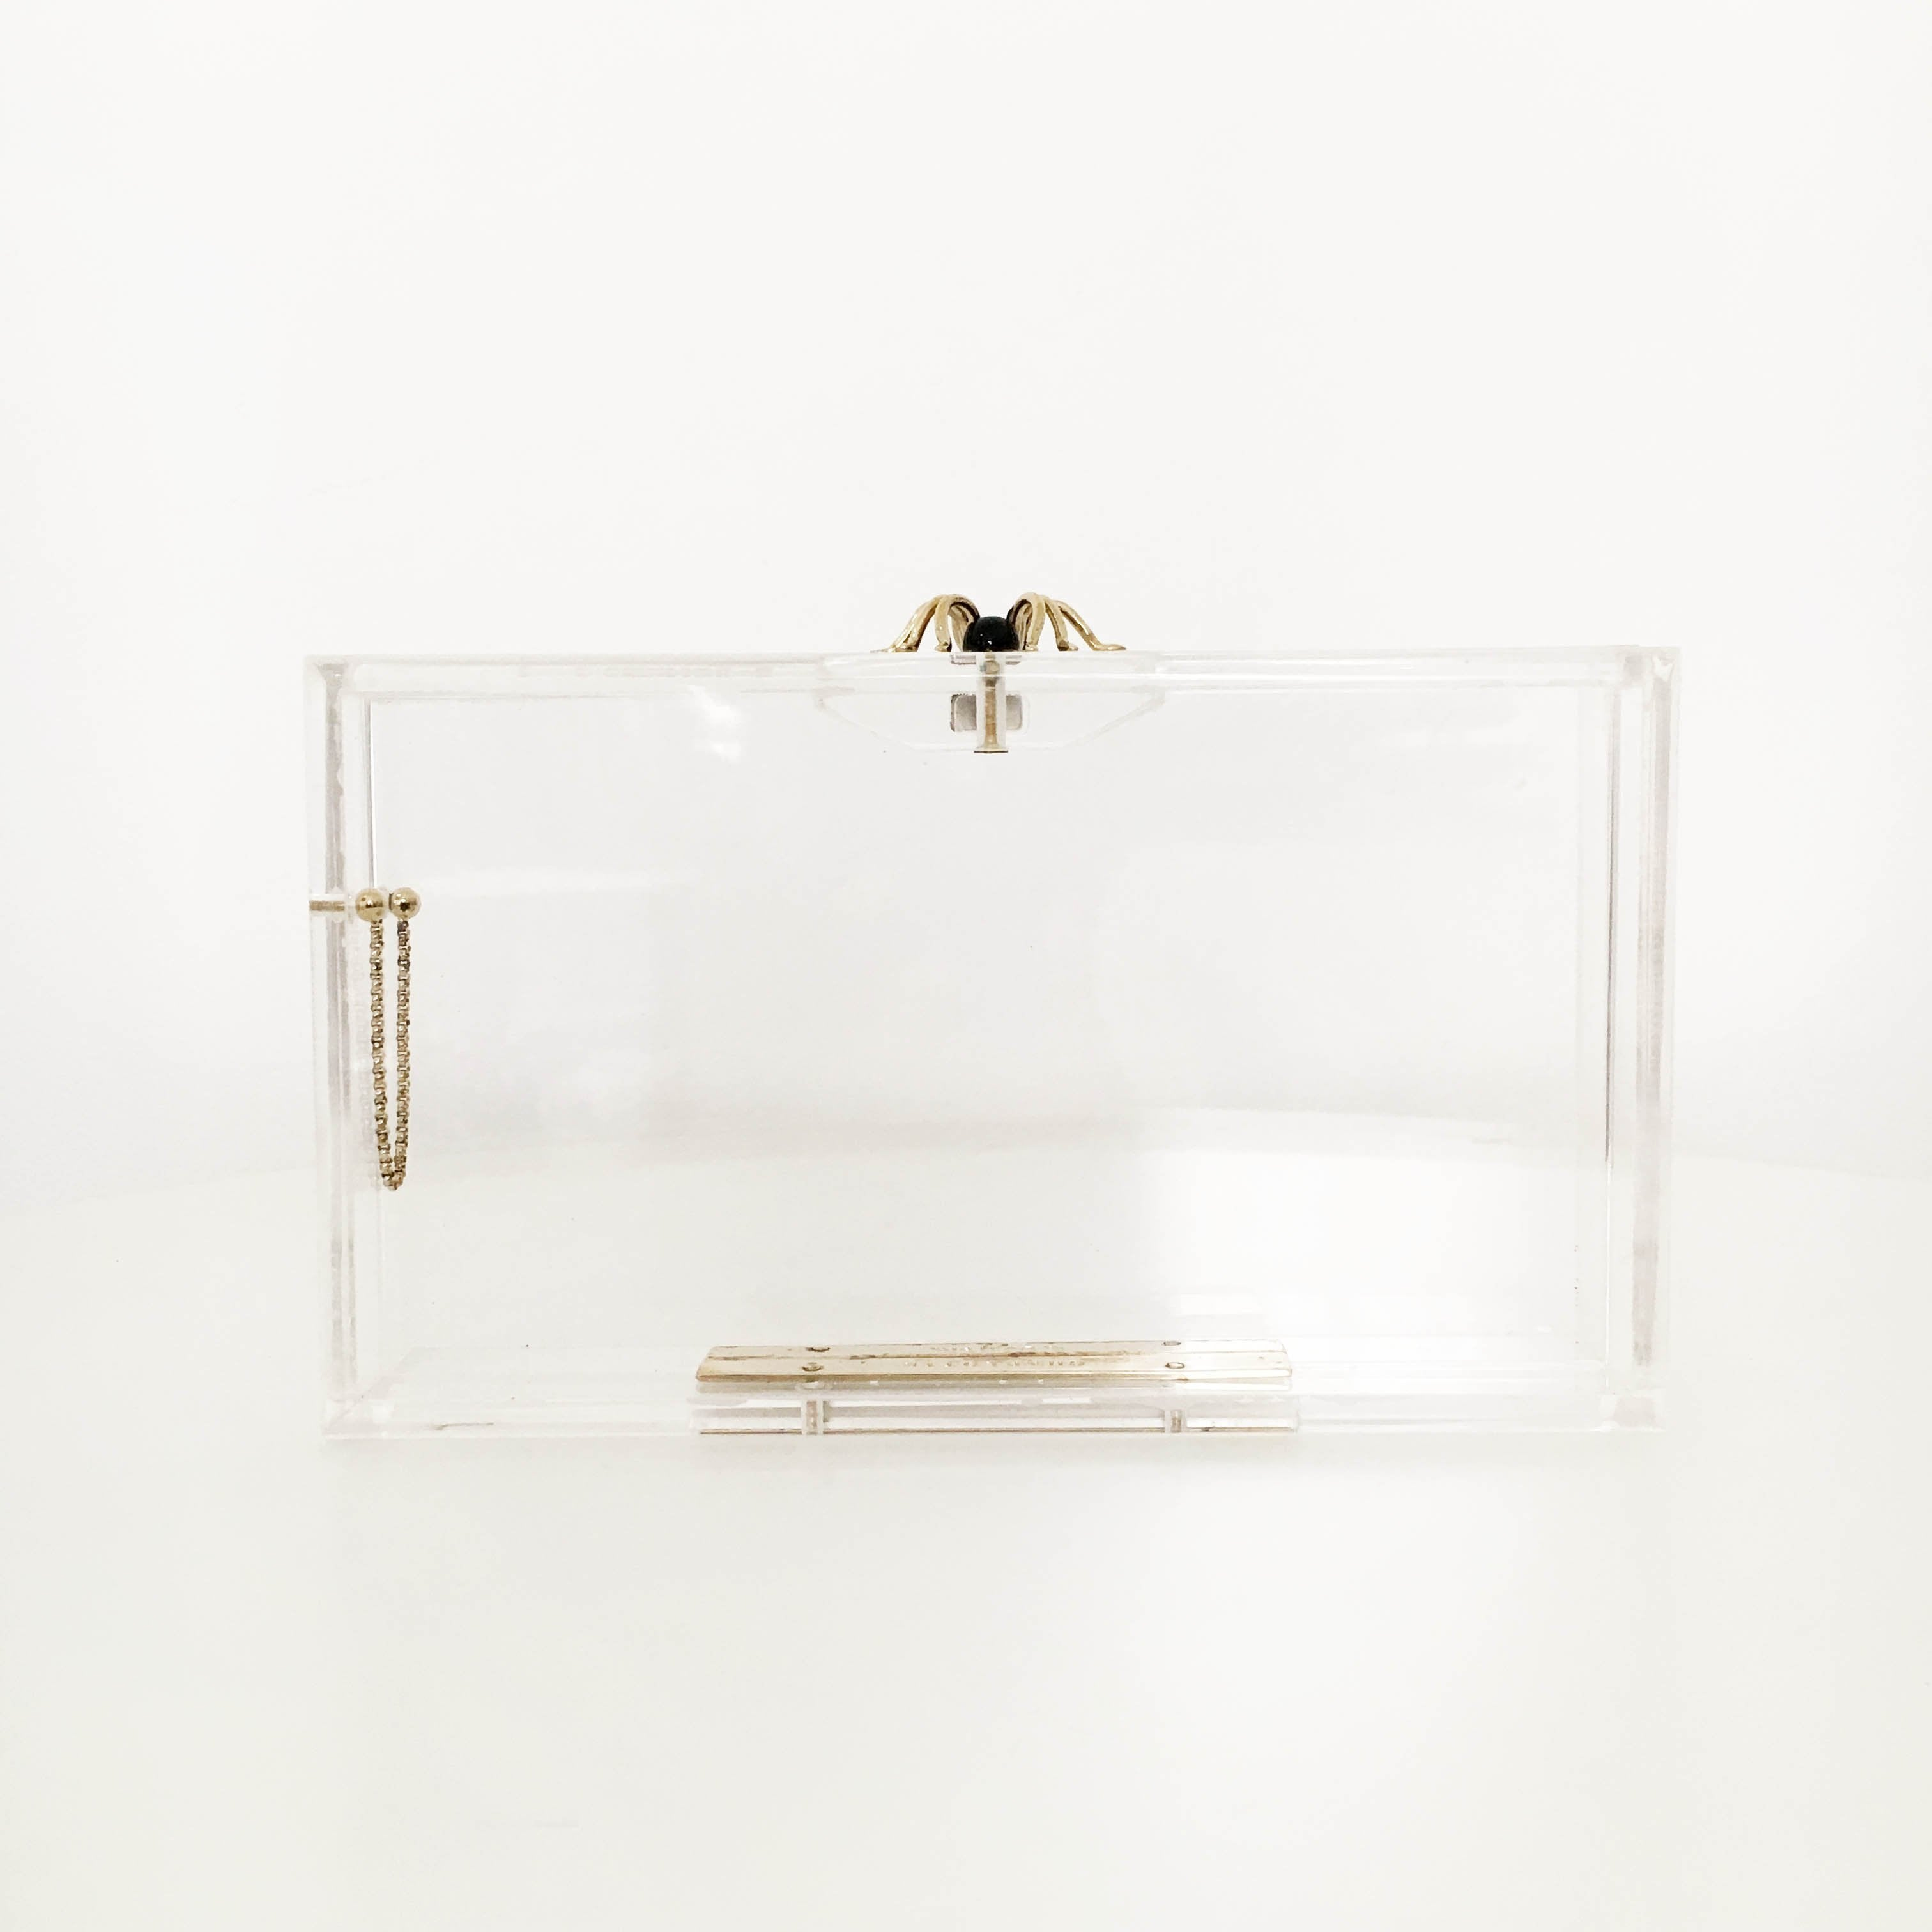 Charlotte Olympia Perspex Spider Pandora Box Clutch